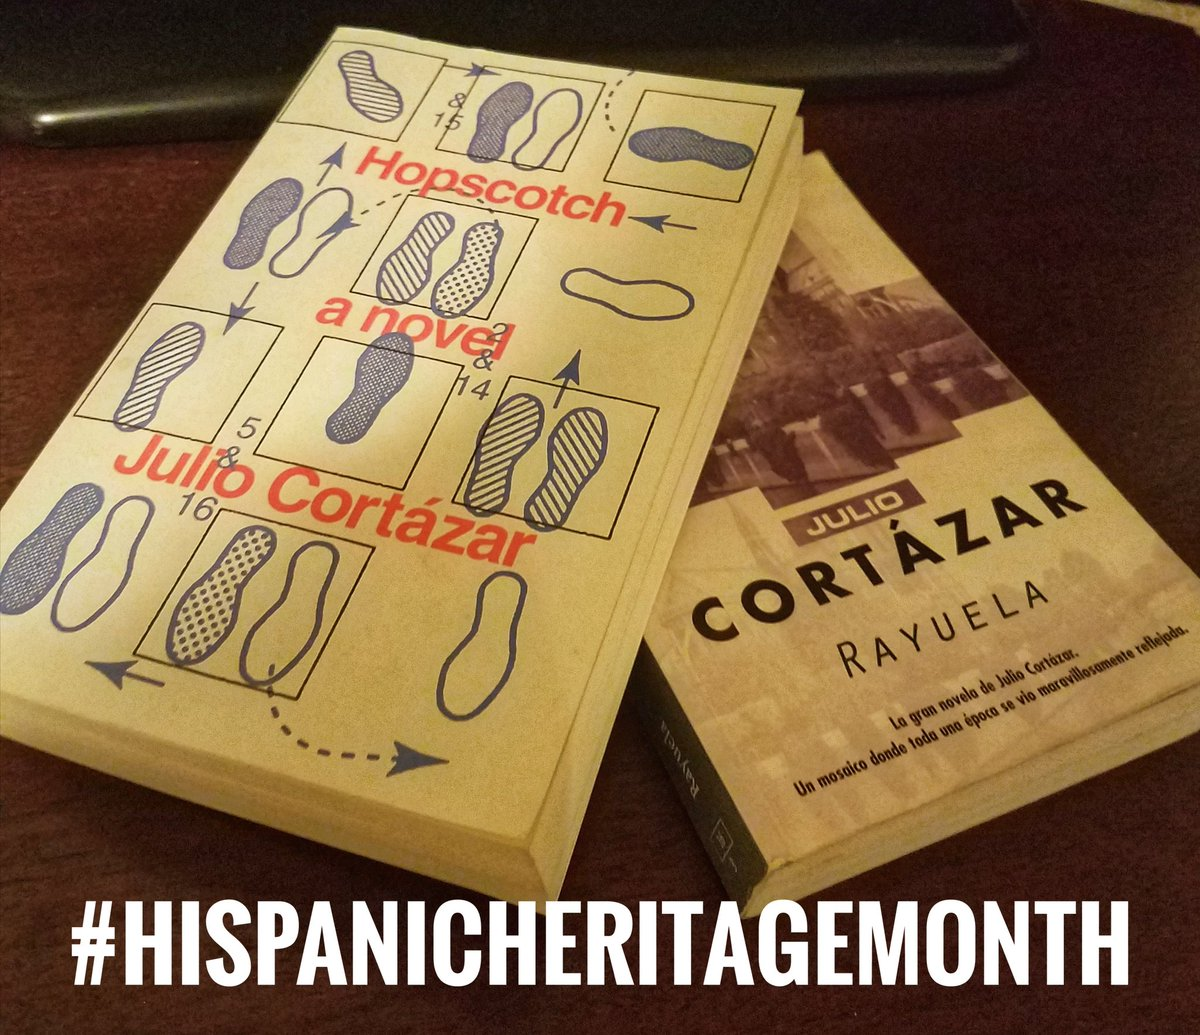 Day #7 Spanglish  #HispanicHeritageMonth  it means getting to read your favorite book in English &amp; Spanish #SHPE #SHPEDFW #STEM #Cortazar<br>http://pic.twitter.com/TqusbHoPiT